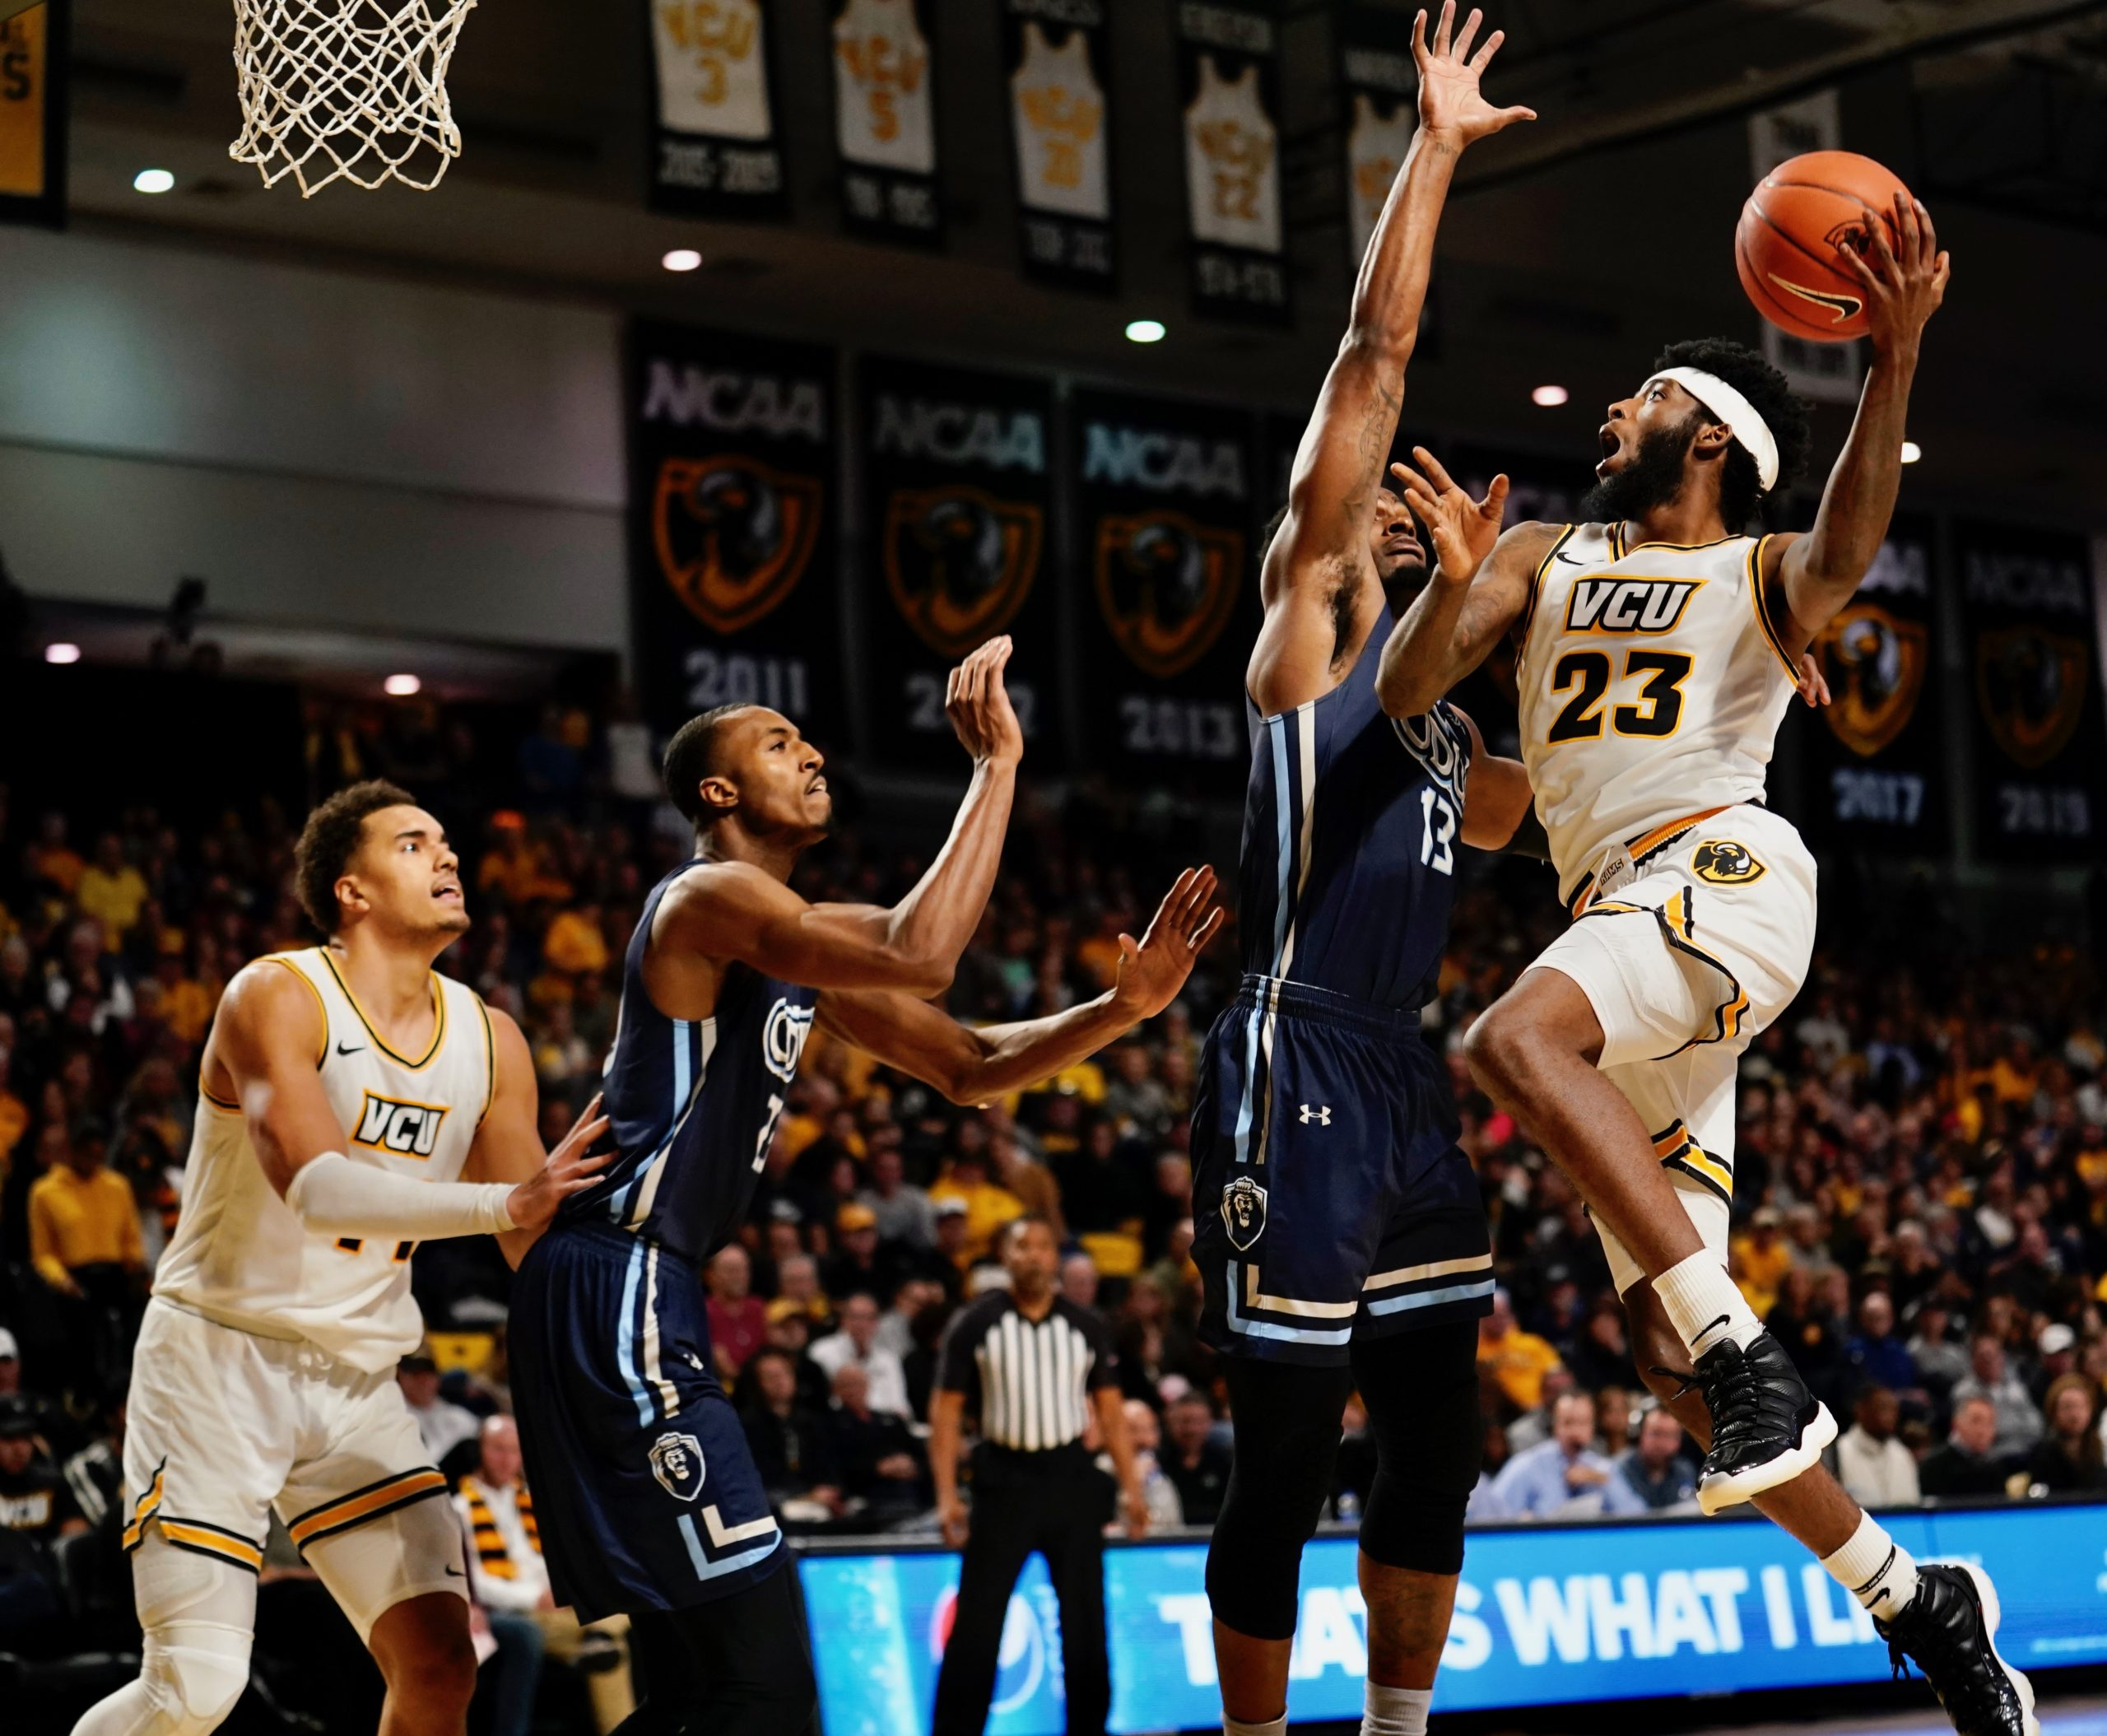 Recap: VCU Bench propels Rams past ODU, 69-57